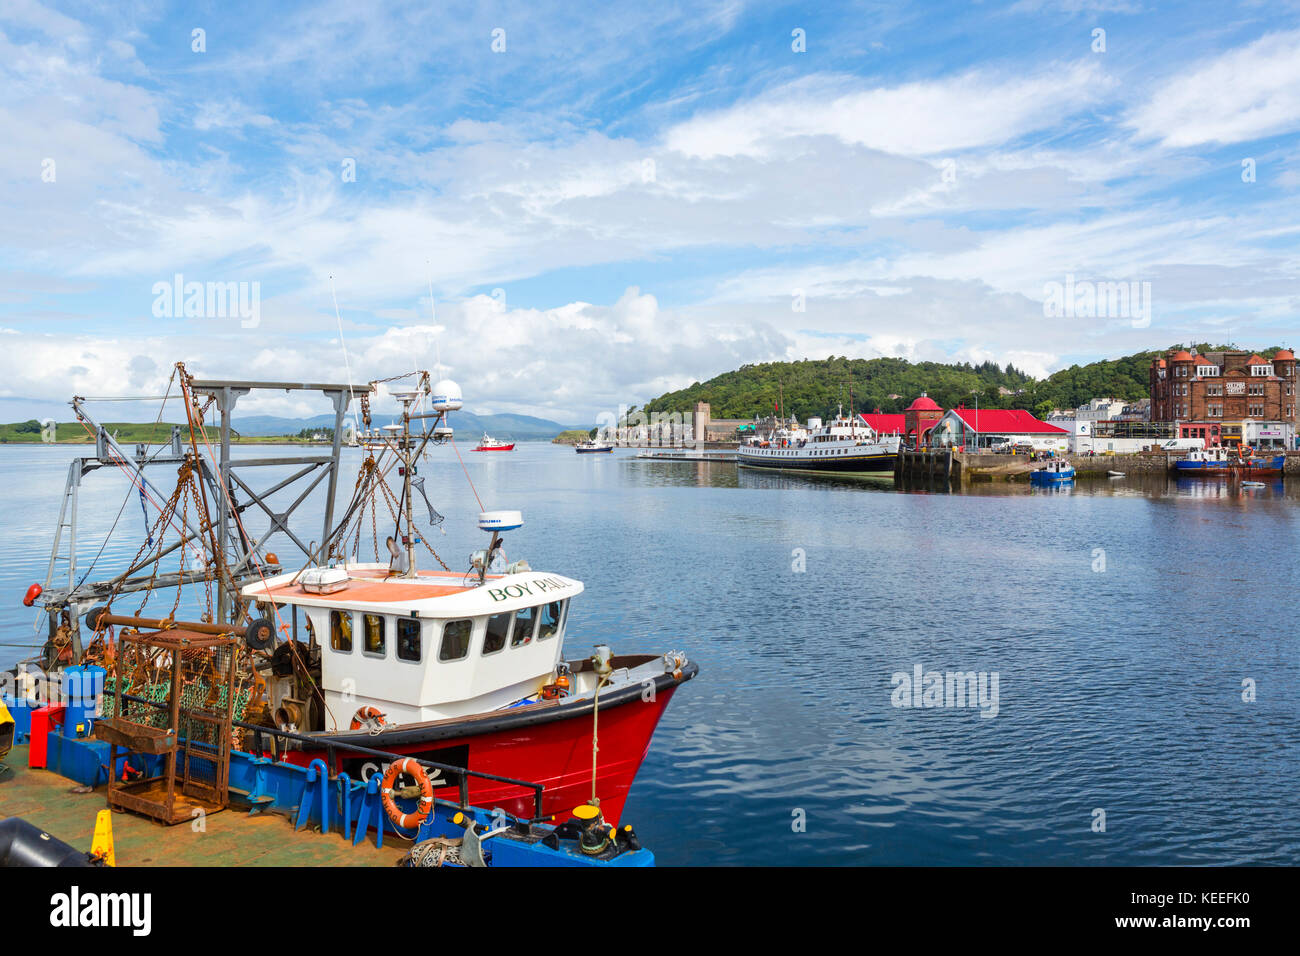 Fishing boat in the harbour, Oban, Argyll and Bute, Scotland, UK - Stock Image